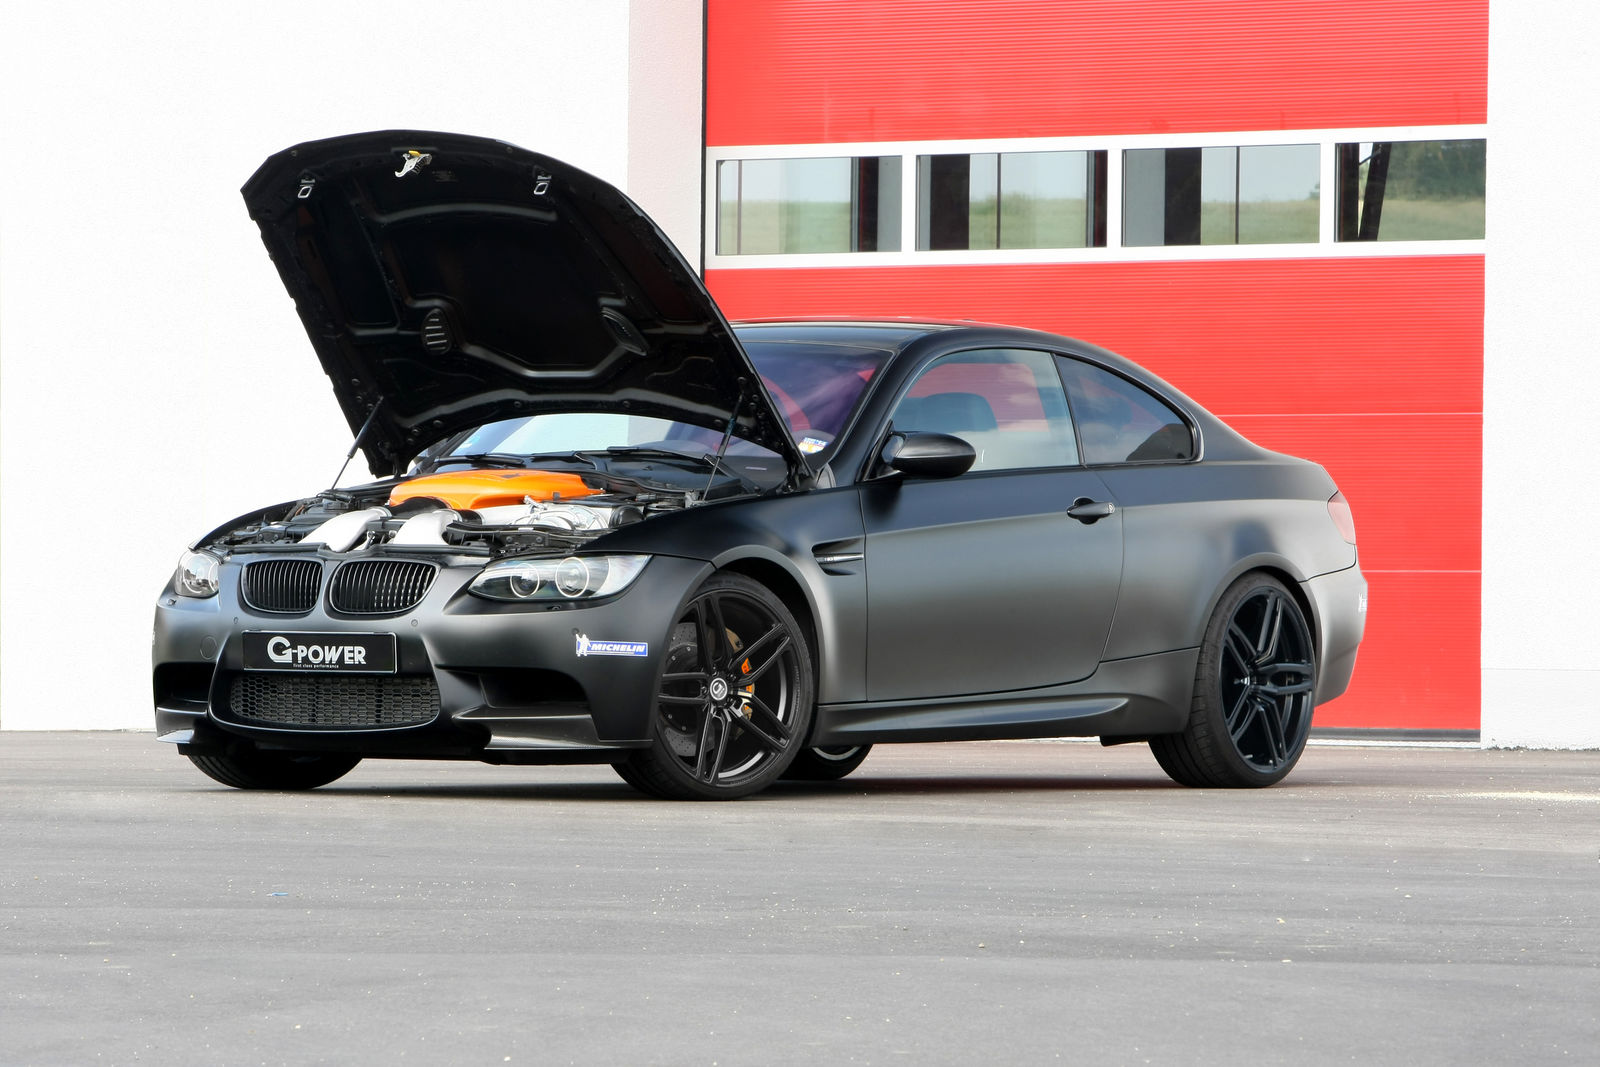 The 35 Jahre Edition package comes with a neat engine performance boost and costs €2,999 to buy and install